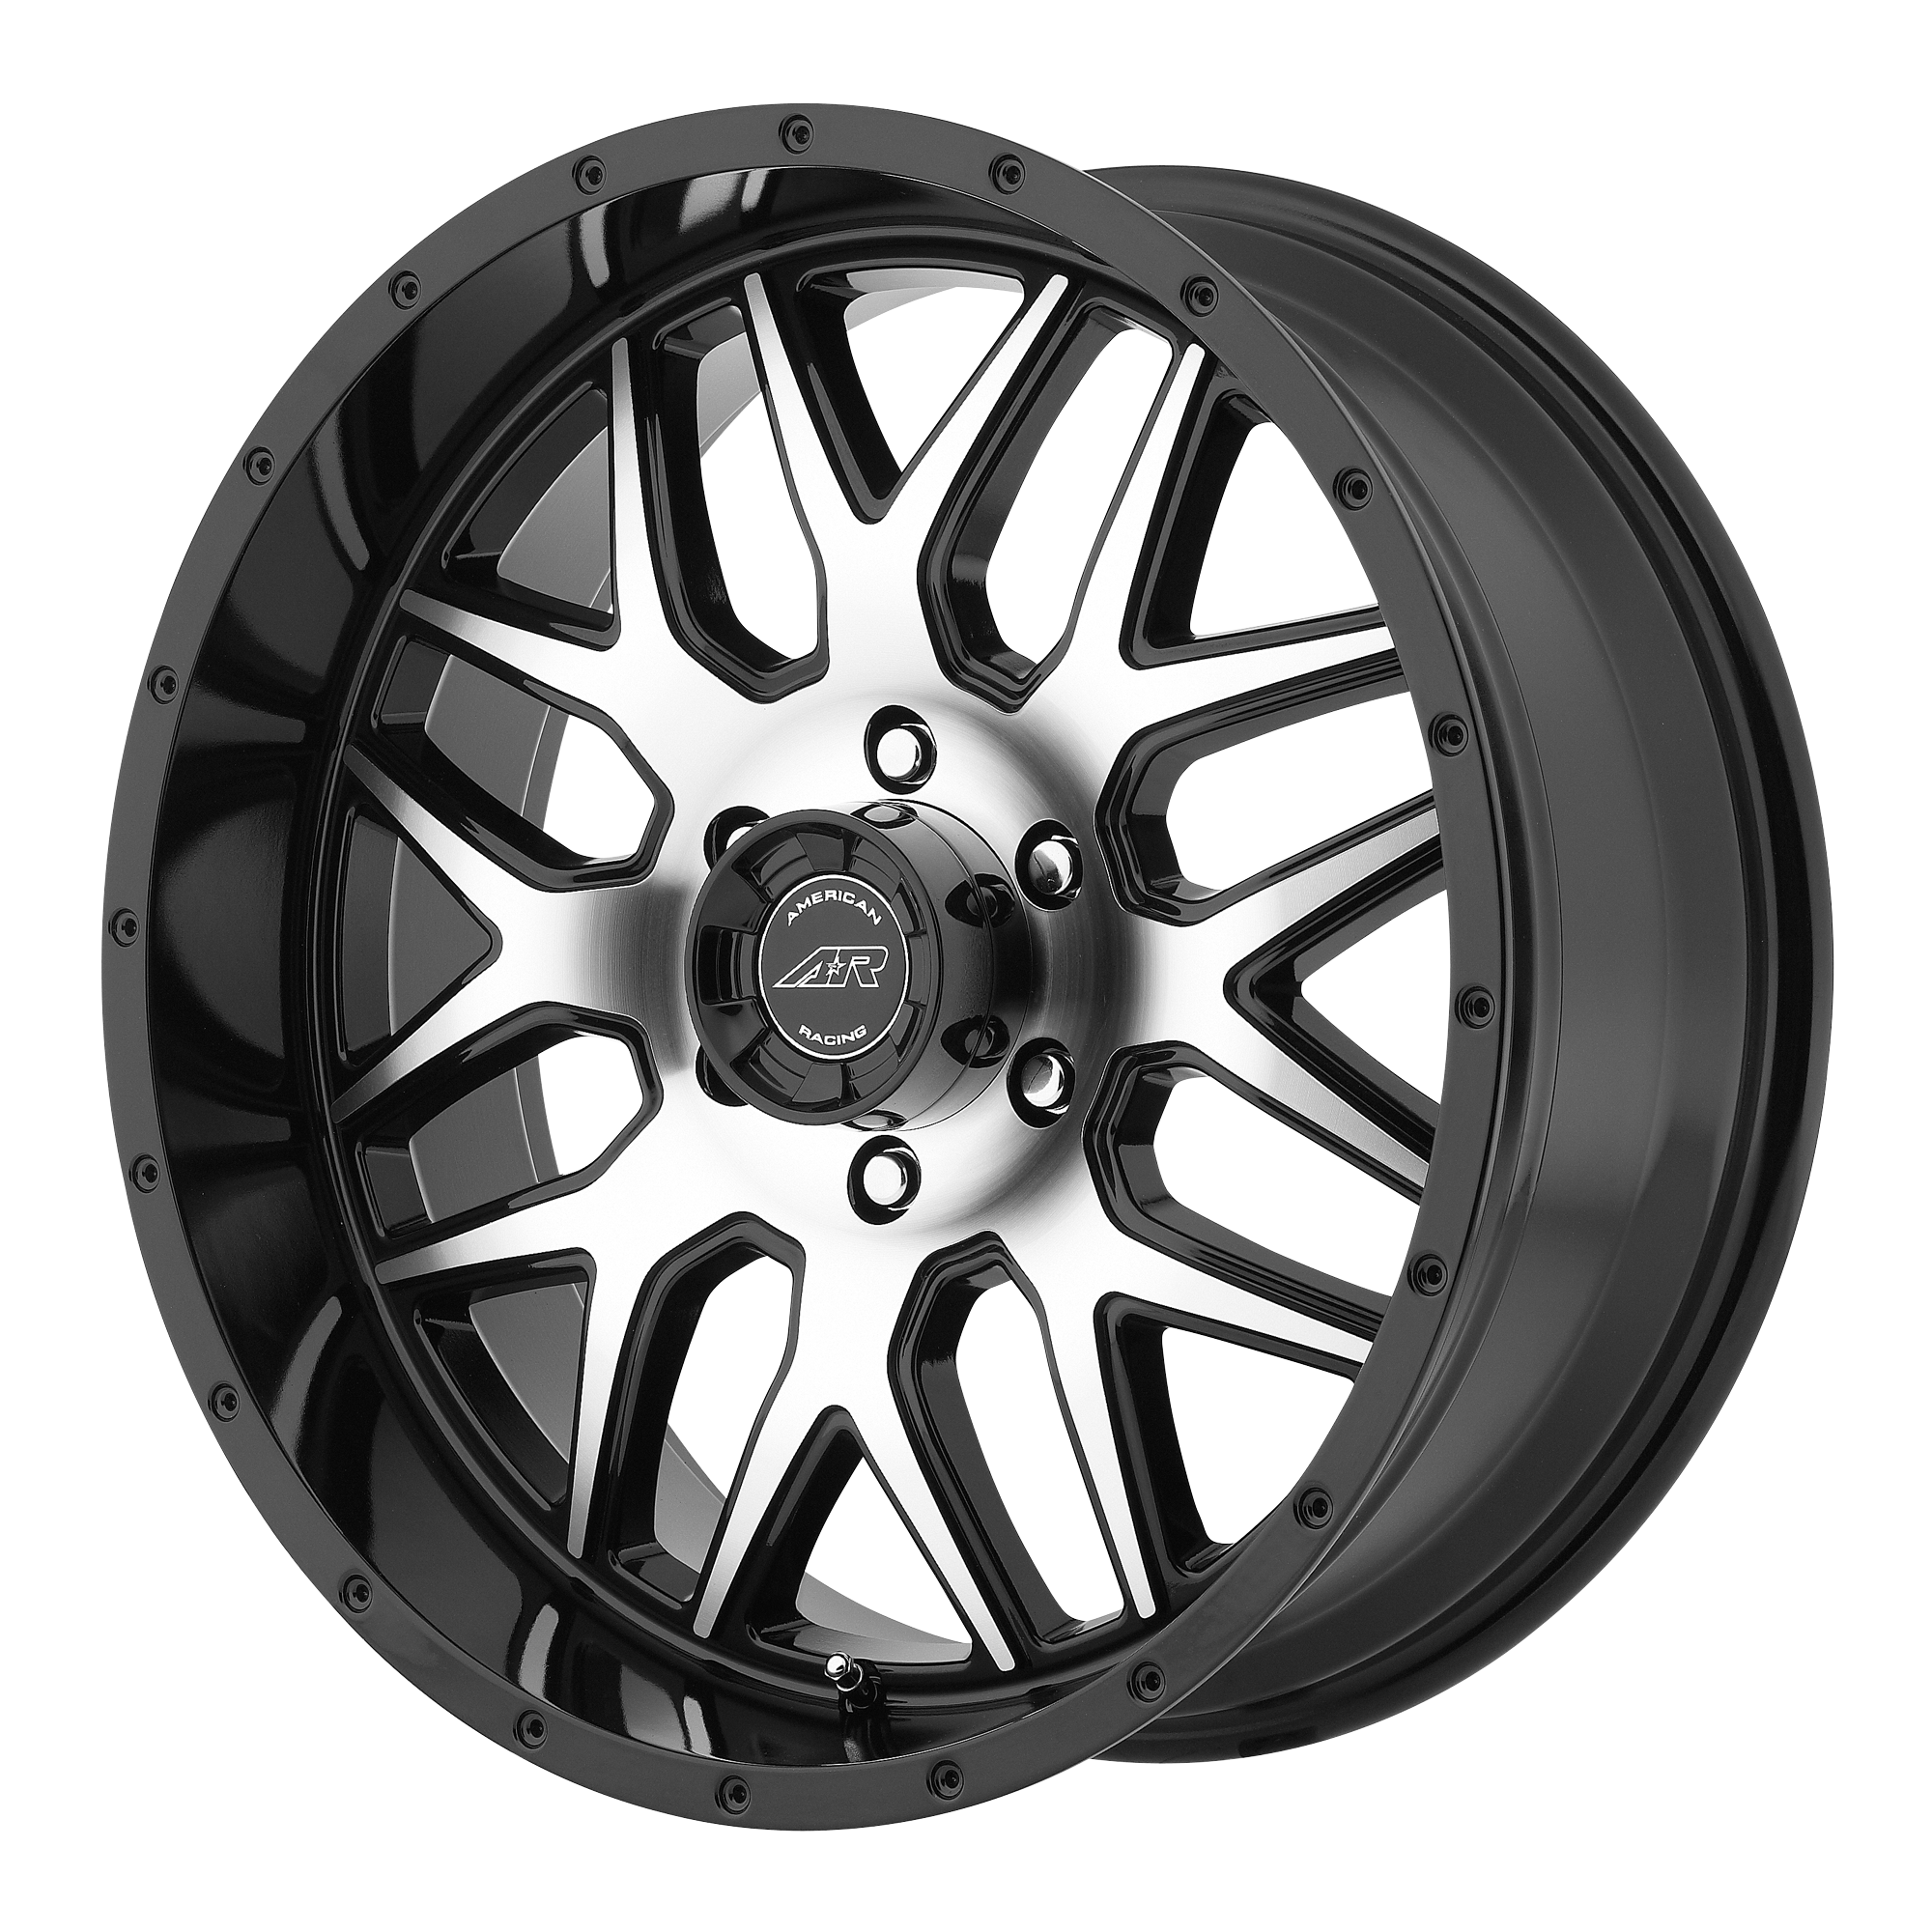 American Racing Wheels AR910 Machined